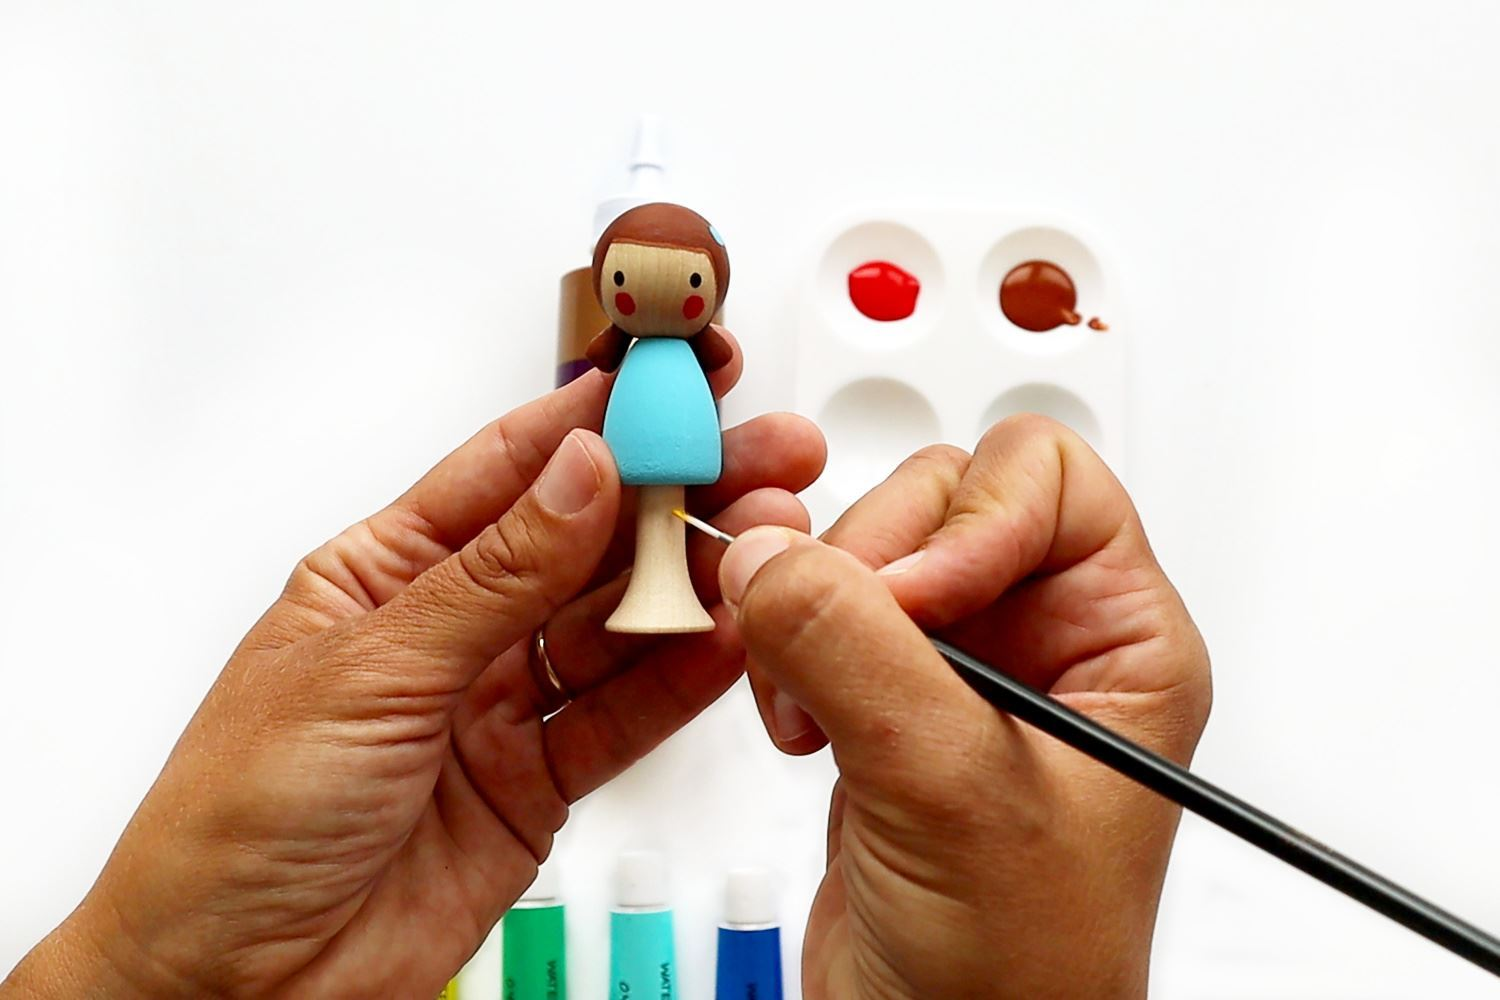 Paint peg doll with acrylic paints